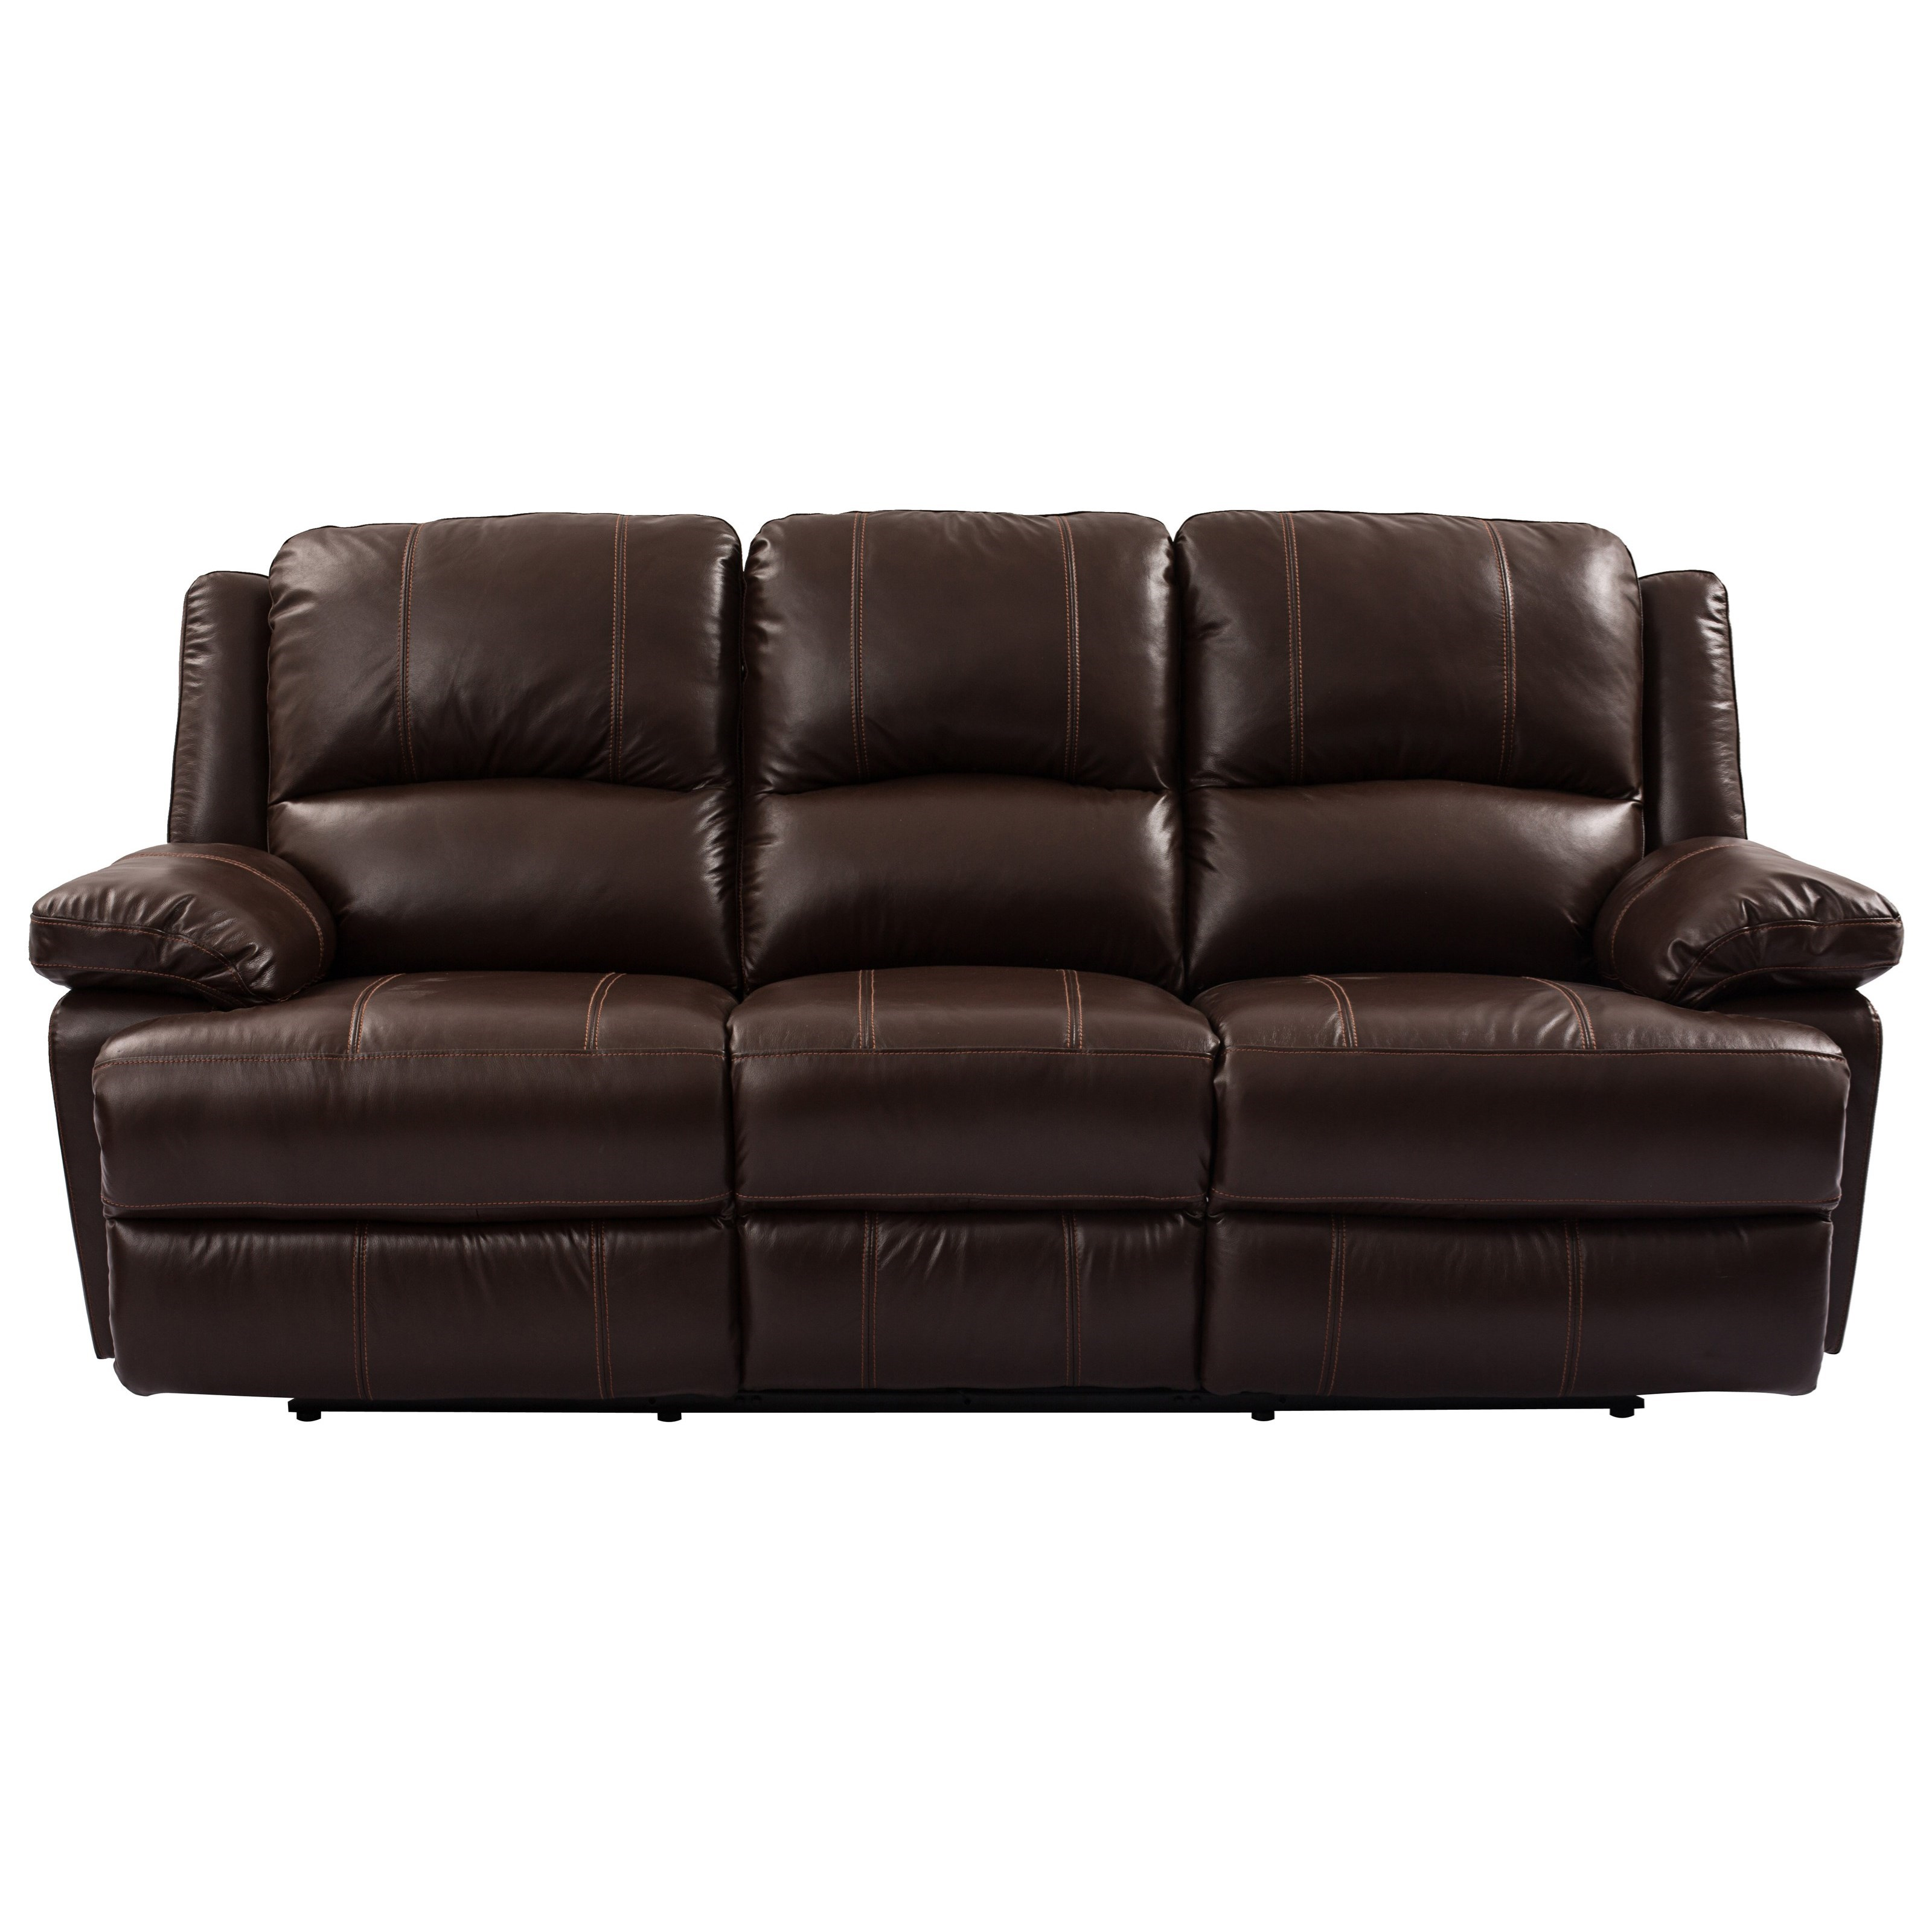 Cheers Sofa 9863 Dual Power Reclining Sofa - Item Number: 9863-L3-2E-2527